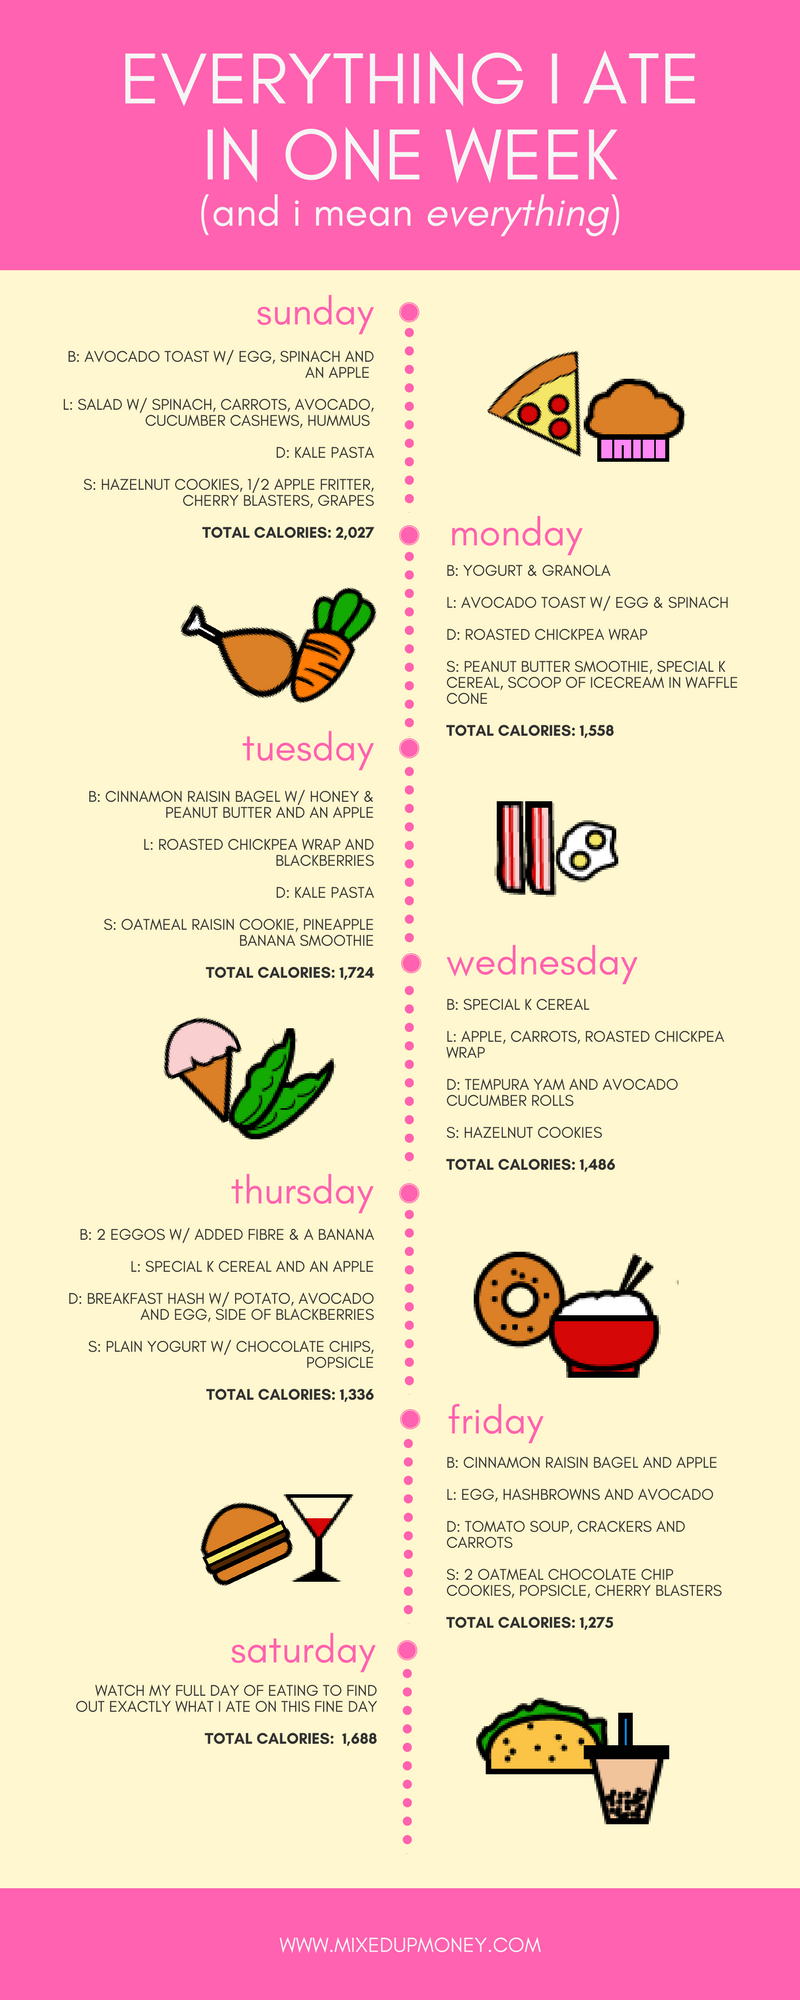 counting-calories-to-save-money